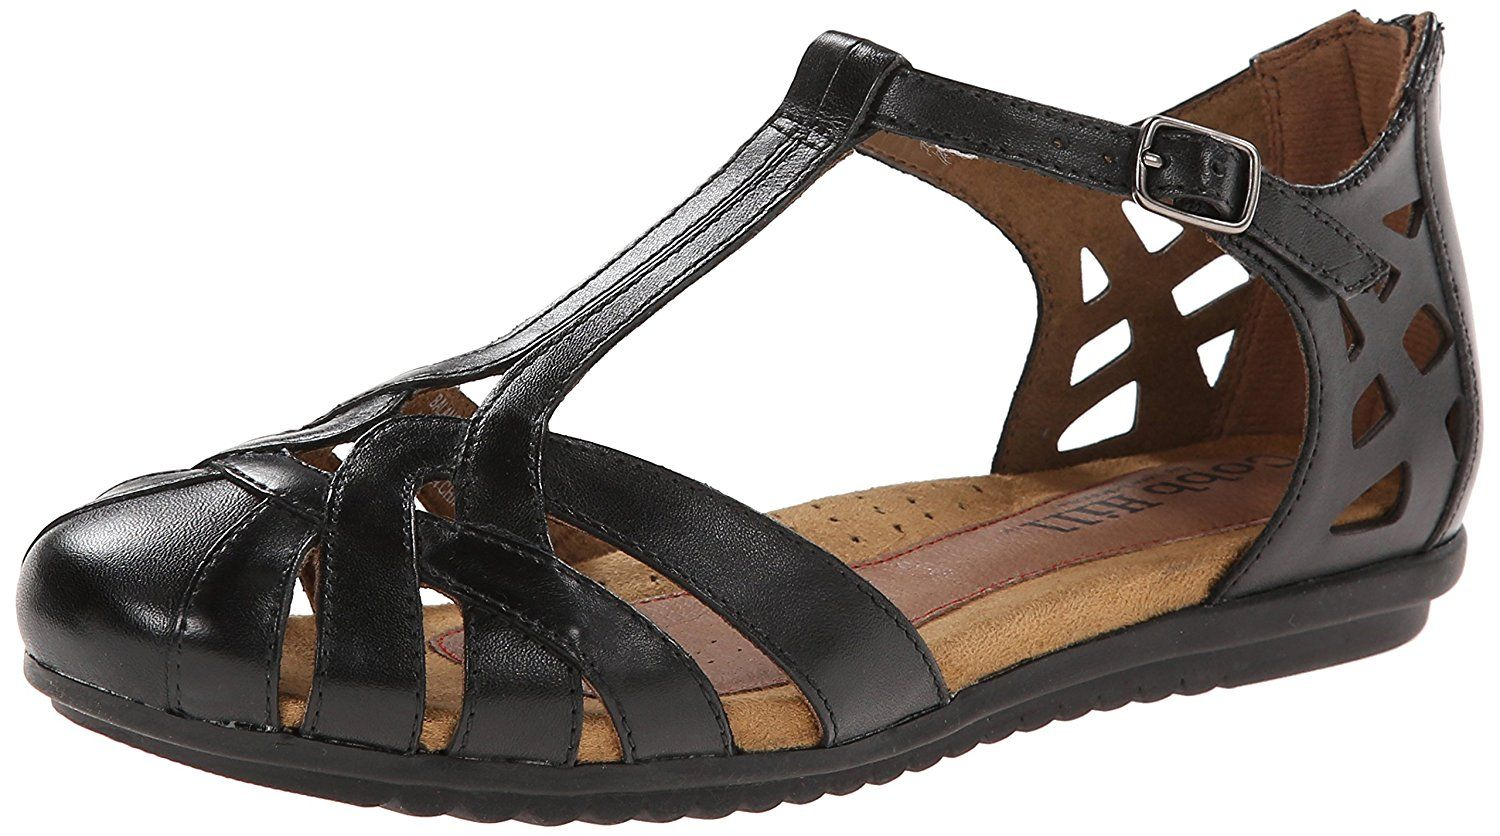 ff2088315 Rockport Cobb Hill Women s Ireland CH Enclosed Dress Sandal -- Insider s  special review you can t miss. Read more   Women s Flats Sandals